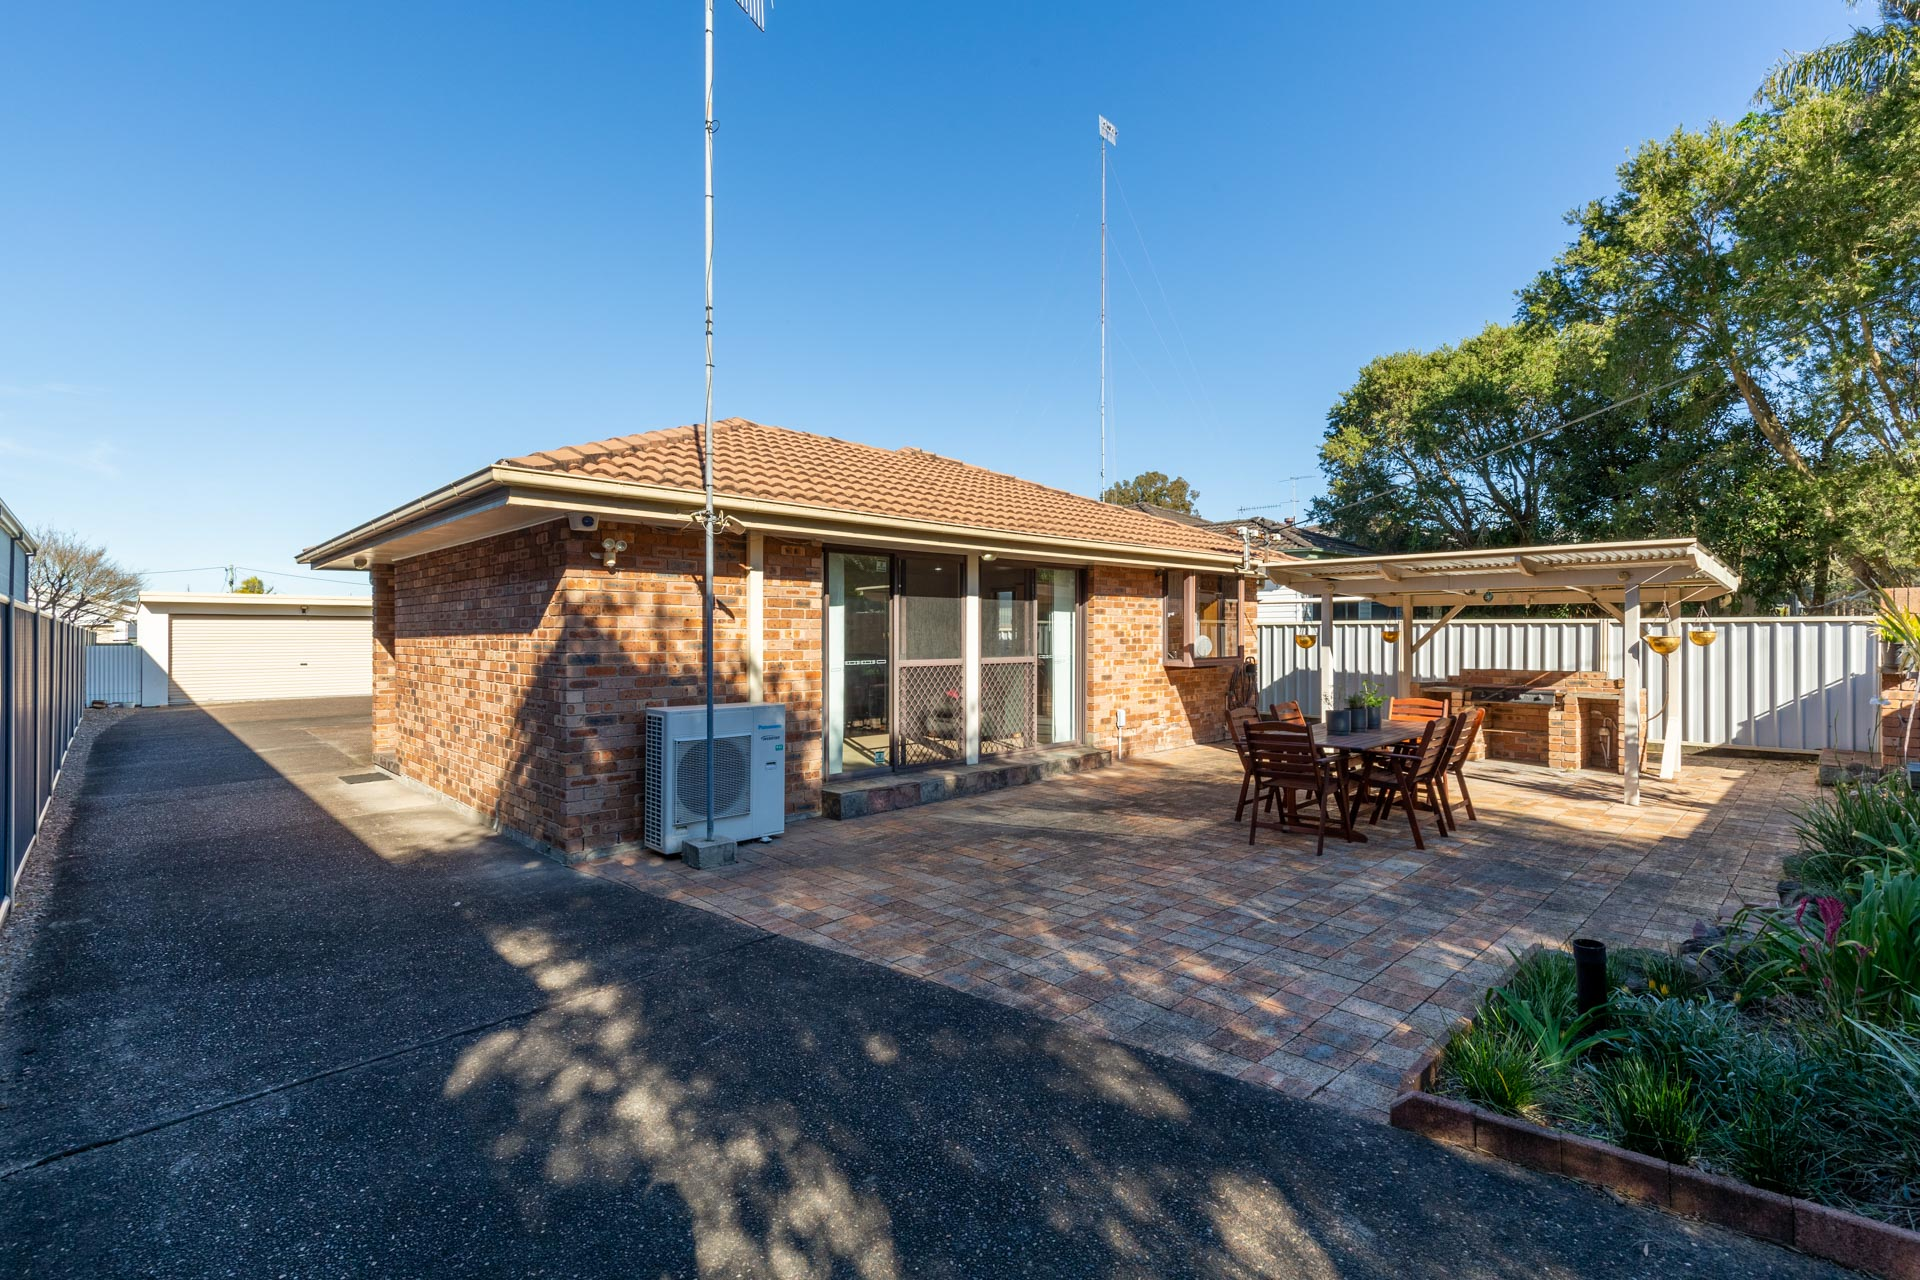 70 Medcalf St   Warners Bay (7 of 18)